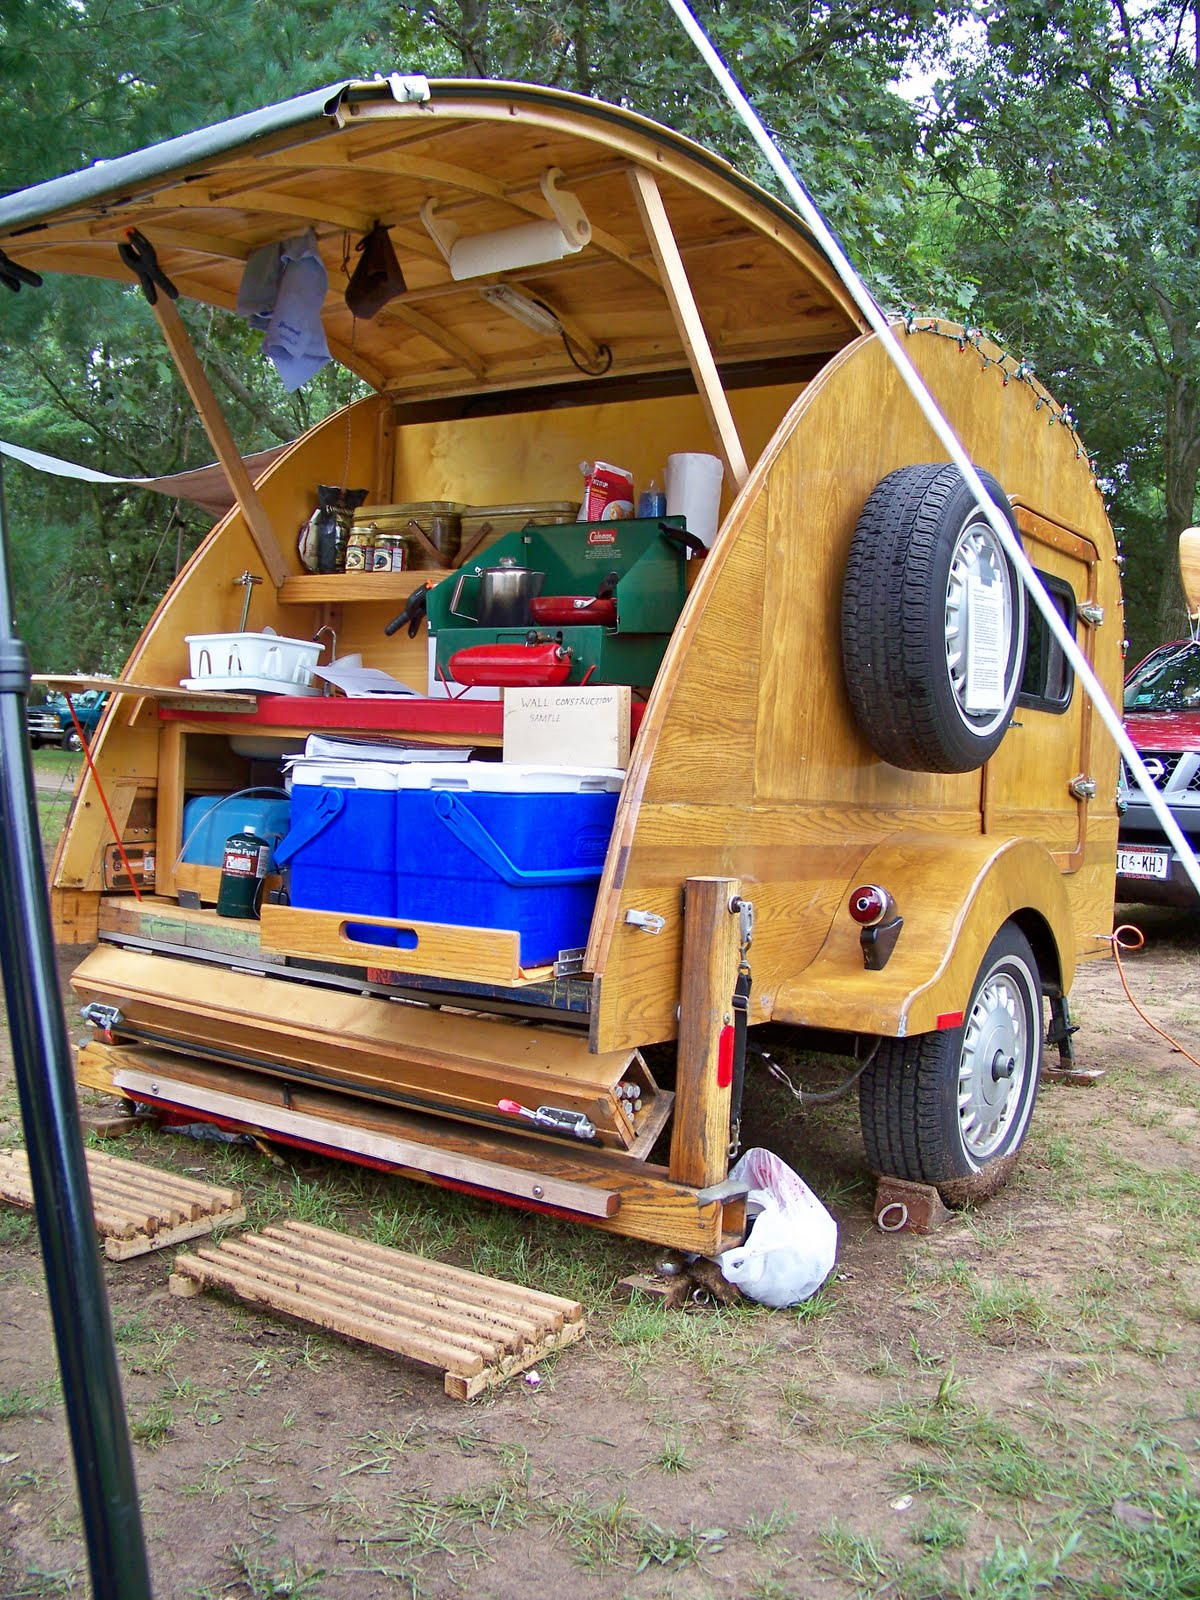 Teardrop Trailer With Bathroom: 1000+ Images About Camping Stuff On Pinterest